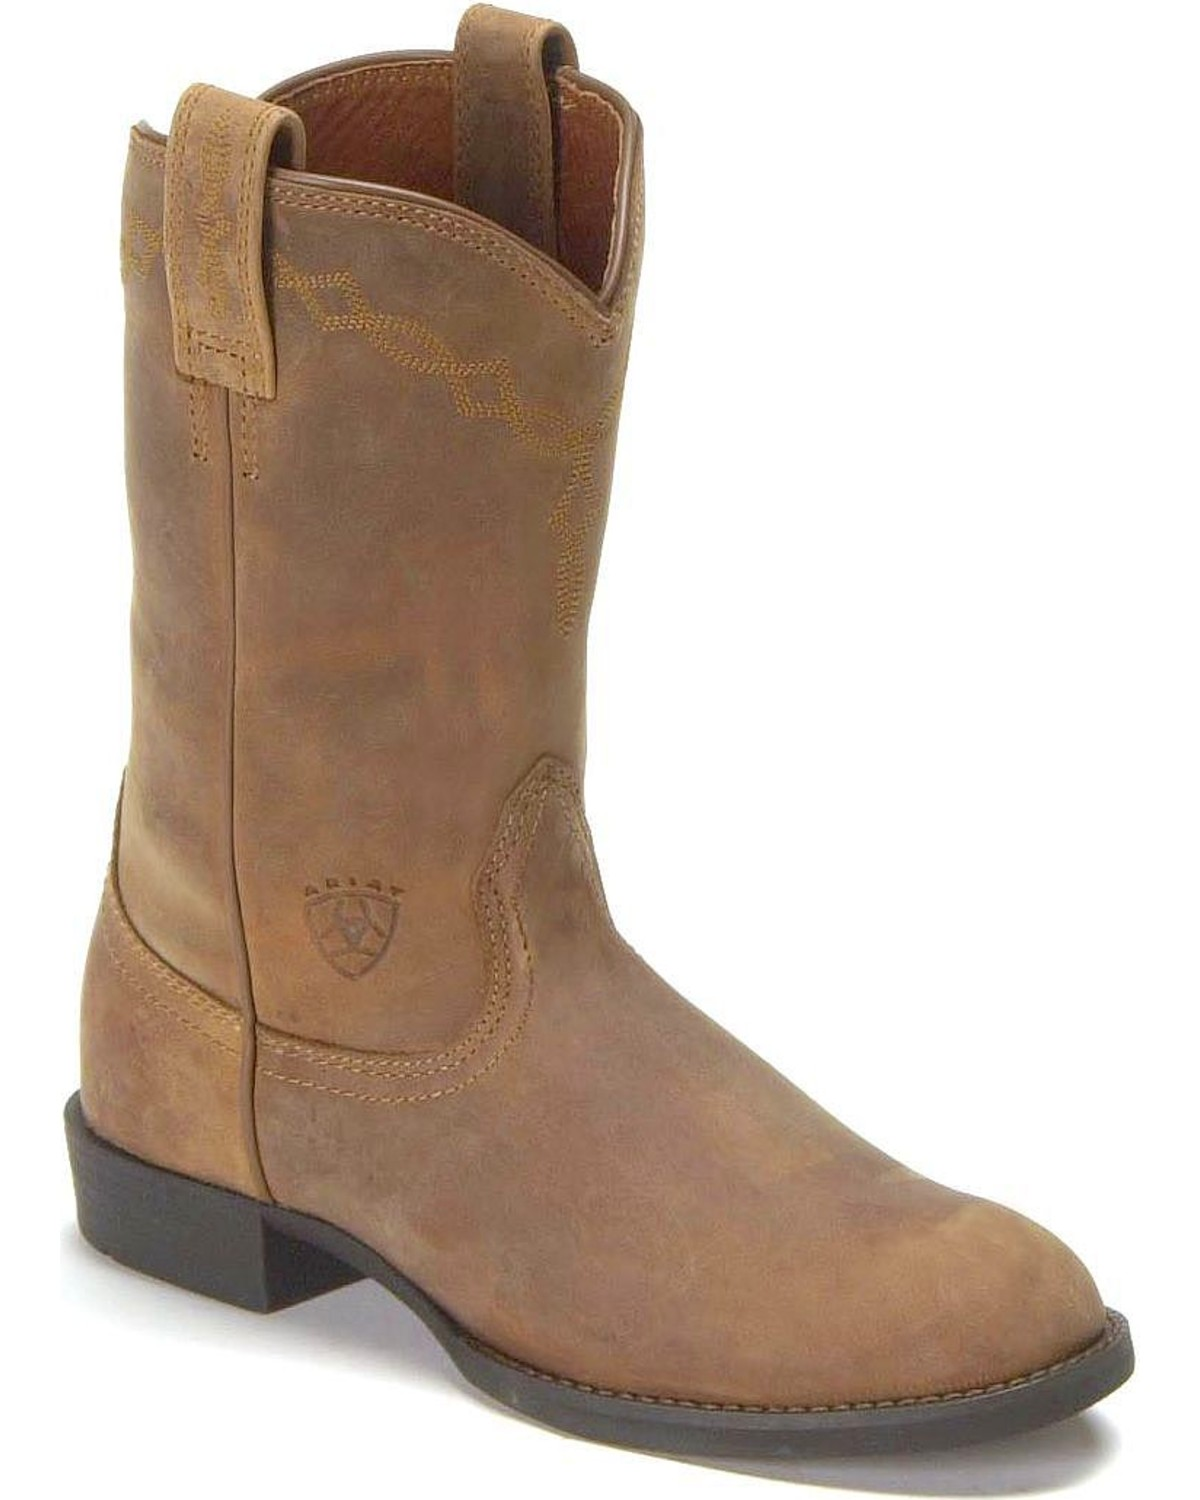 58f066a01a5 Ariat Women's Heritage Roper Western Boots